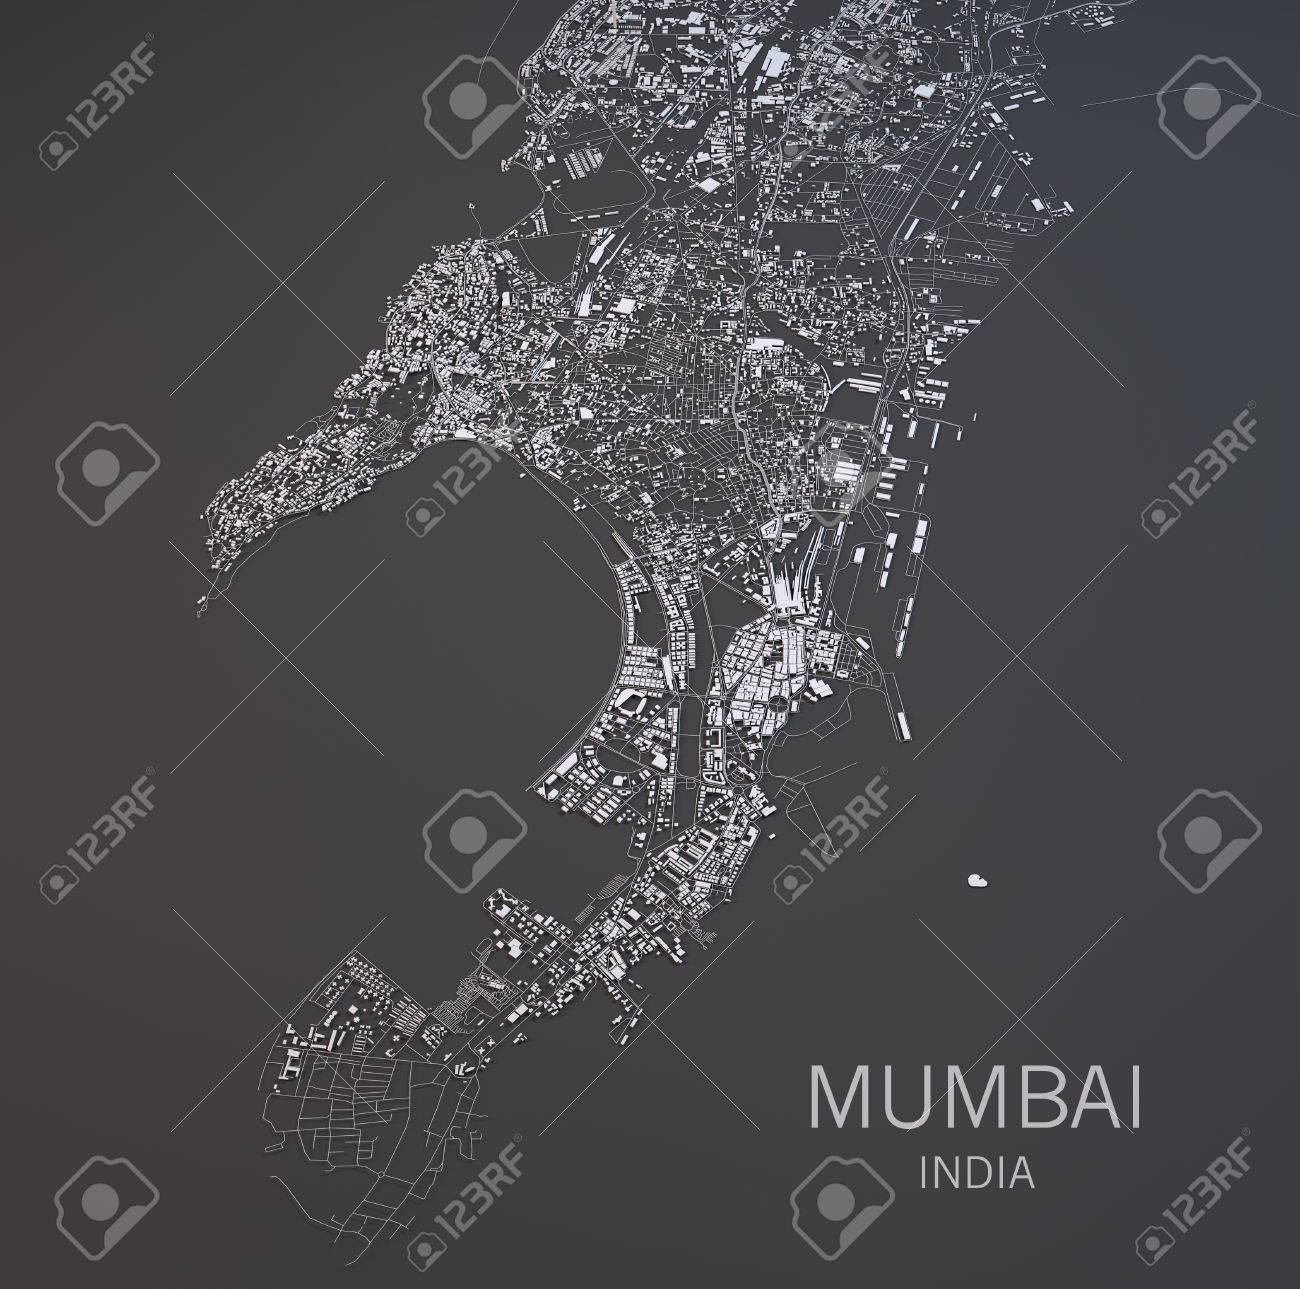 Map of Mumbai, India, satellite view, map in 3d Satellite Map Of Mumbai on city of mumbai, food of mumbai, satellite view of mumbai, satellite map bangalore, satellite map pune, satellite map india, satellite imagery of mumbai, outline map of mumbai, satellite map los angeles, road map of mumbai, political map of mumbai, satellite weather, world map of mumbai,